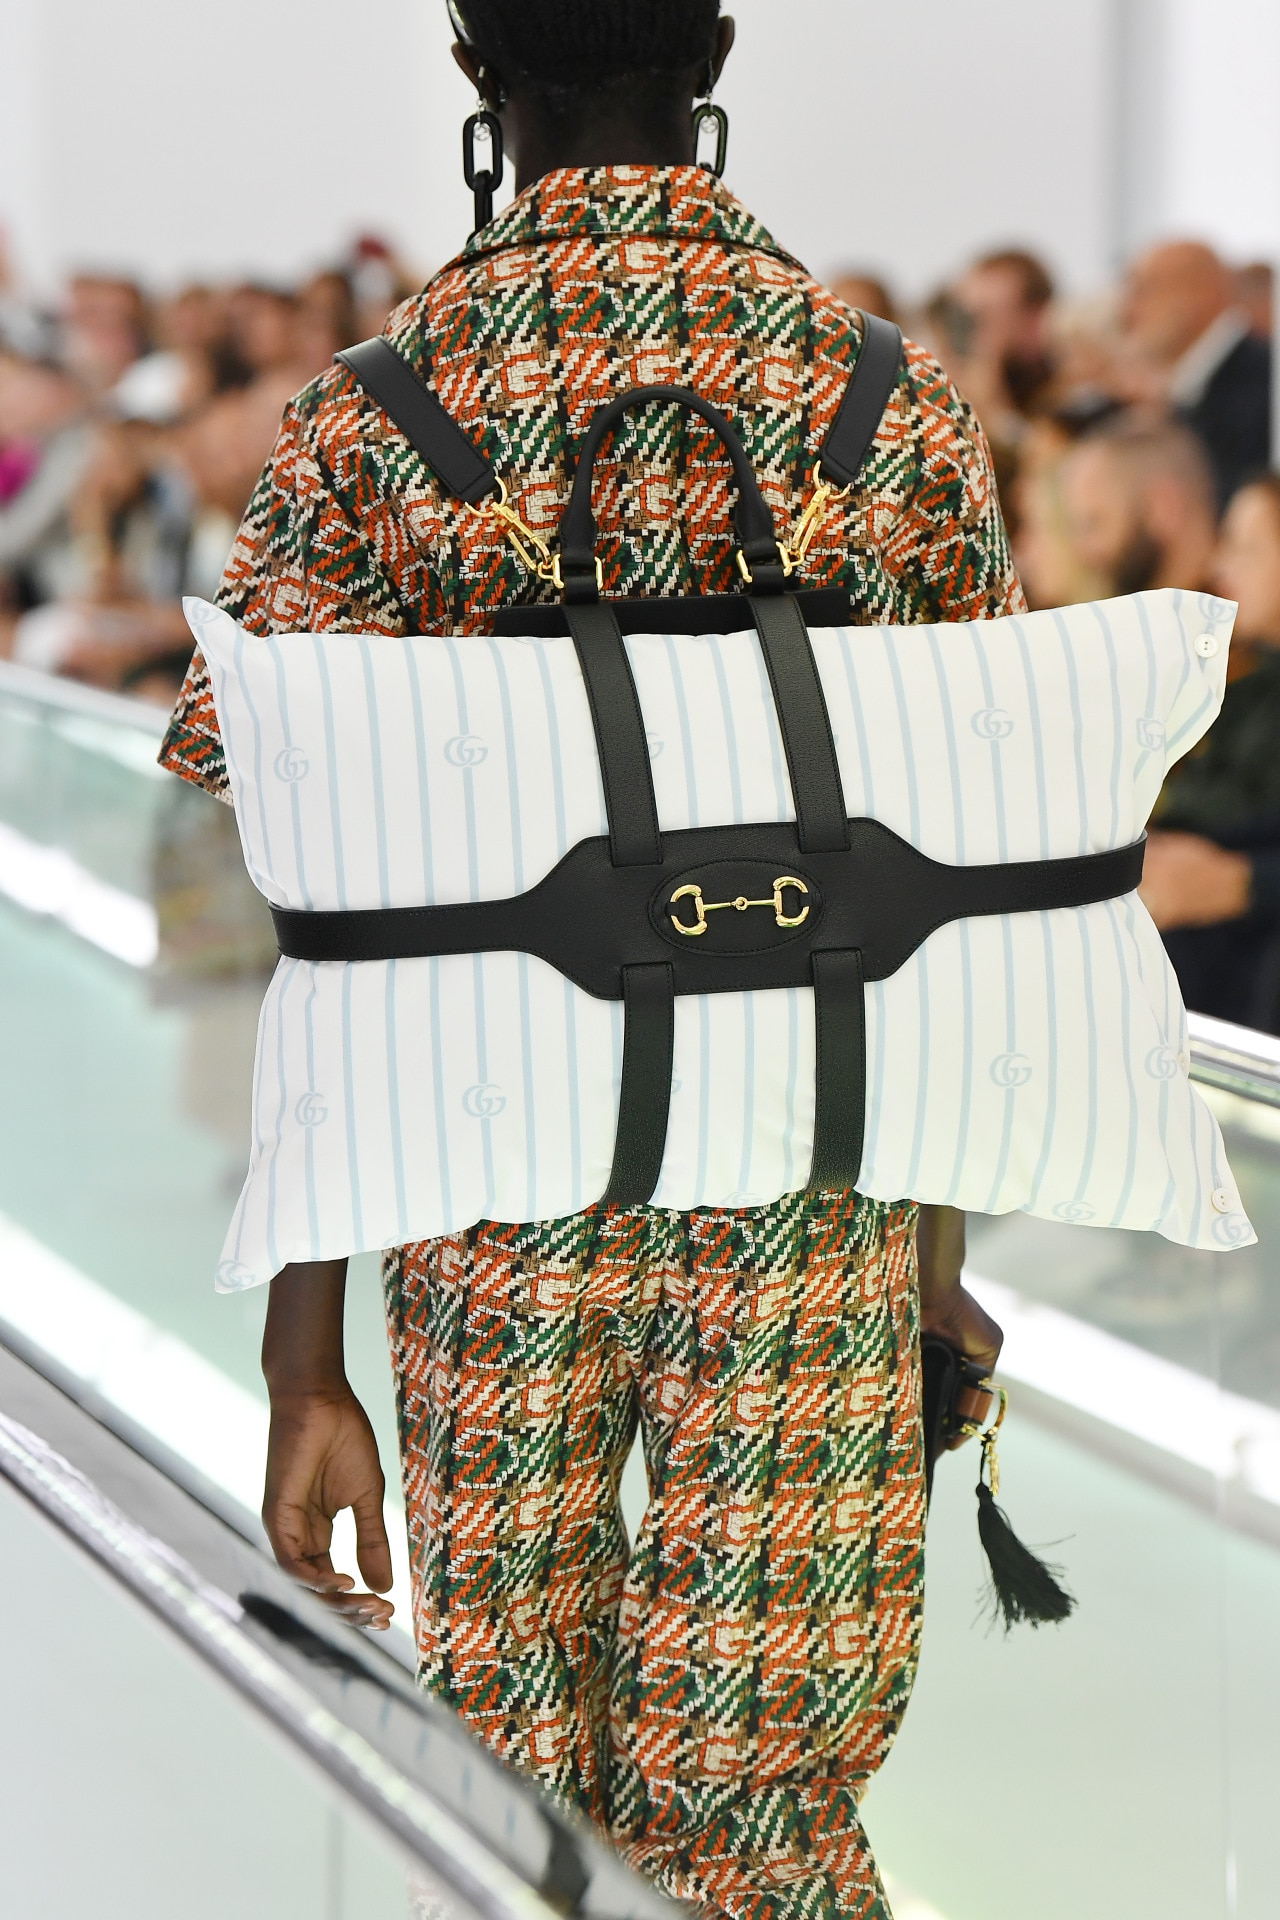 Gucci's new pillow backpacks are here to help you travel in comfort and style